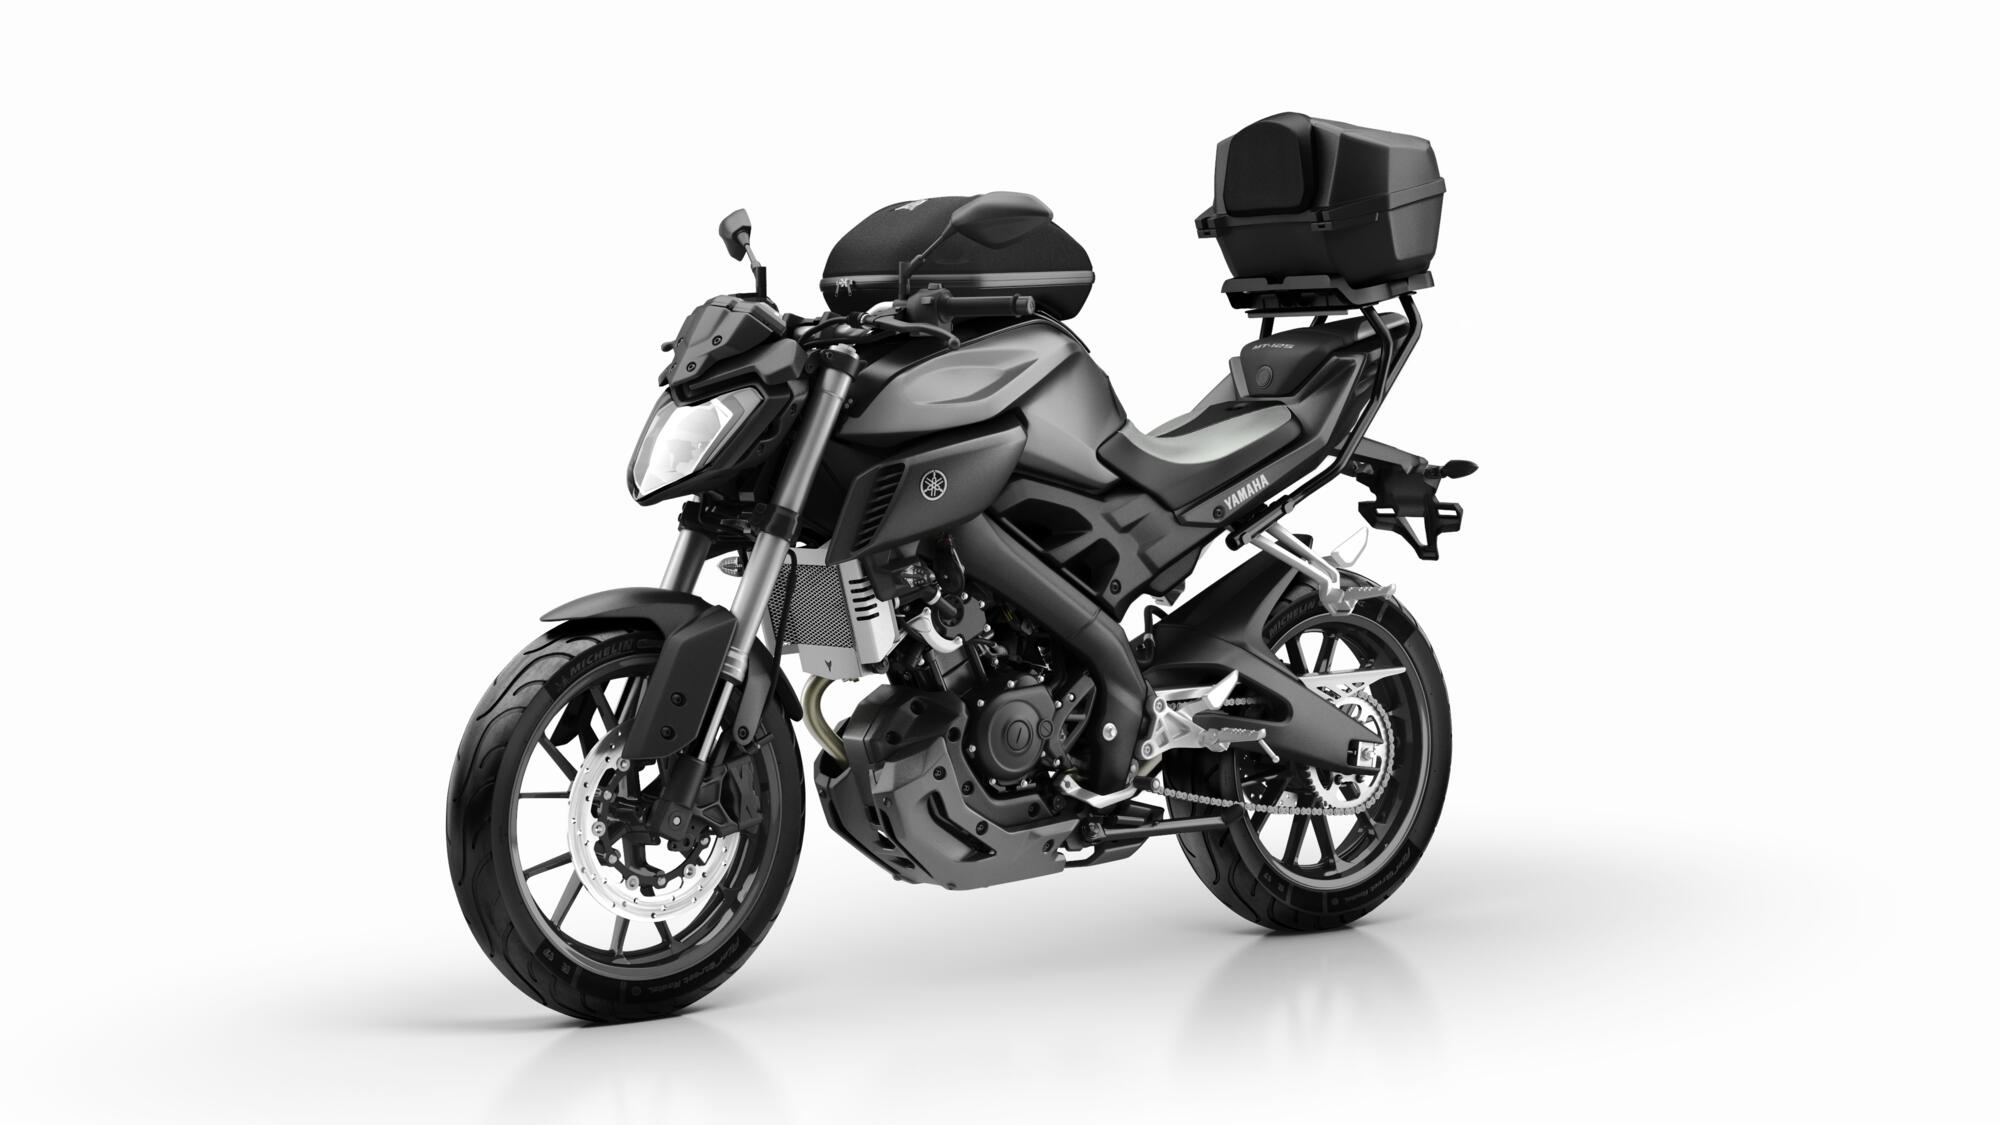 united kingdom check out on feet at Accessoires pour MT-125 2015 - Yamaha Motor France